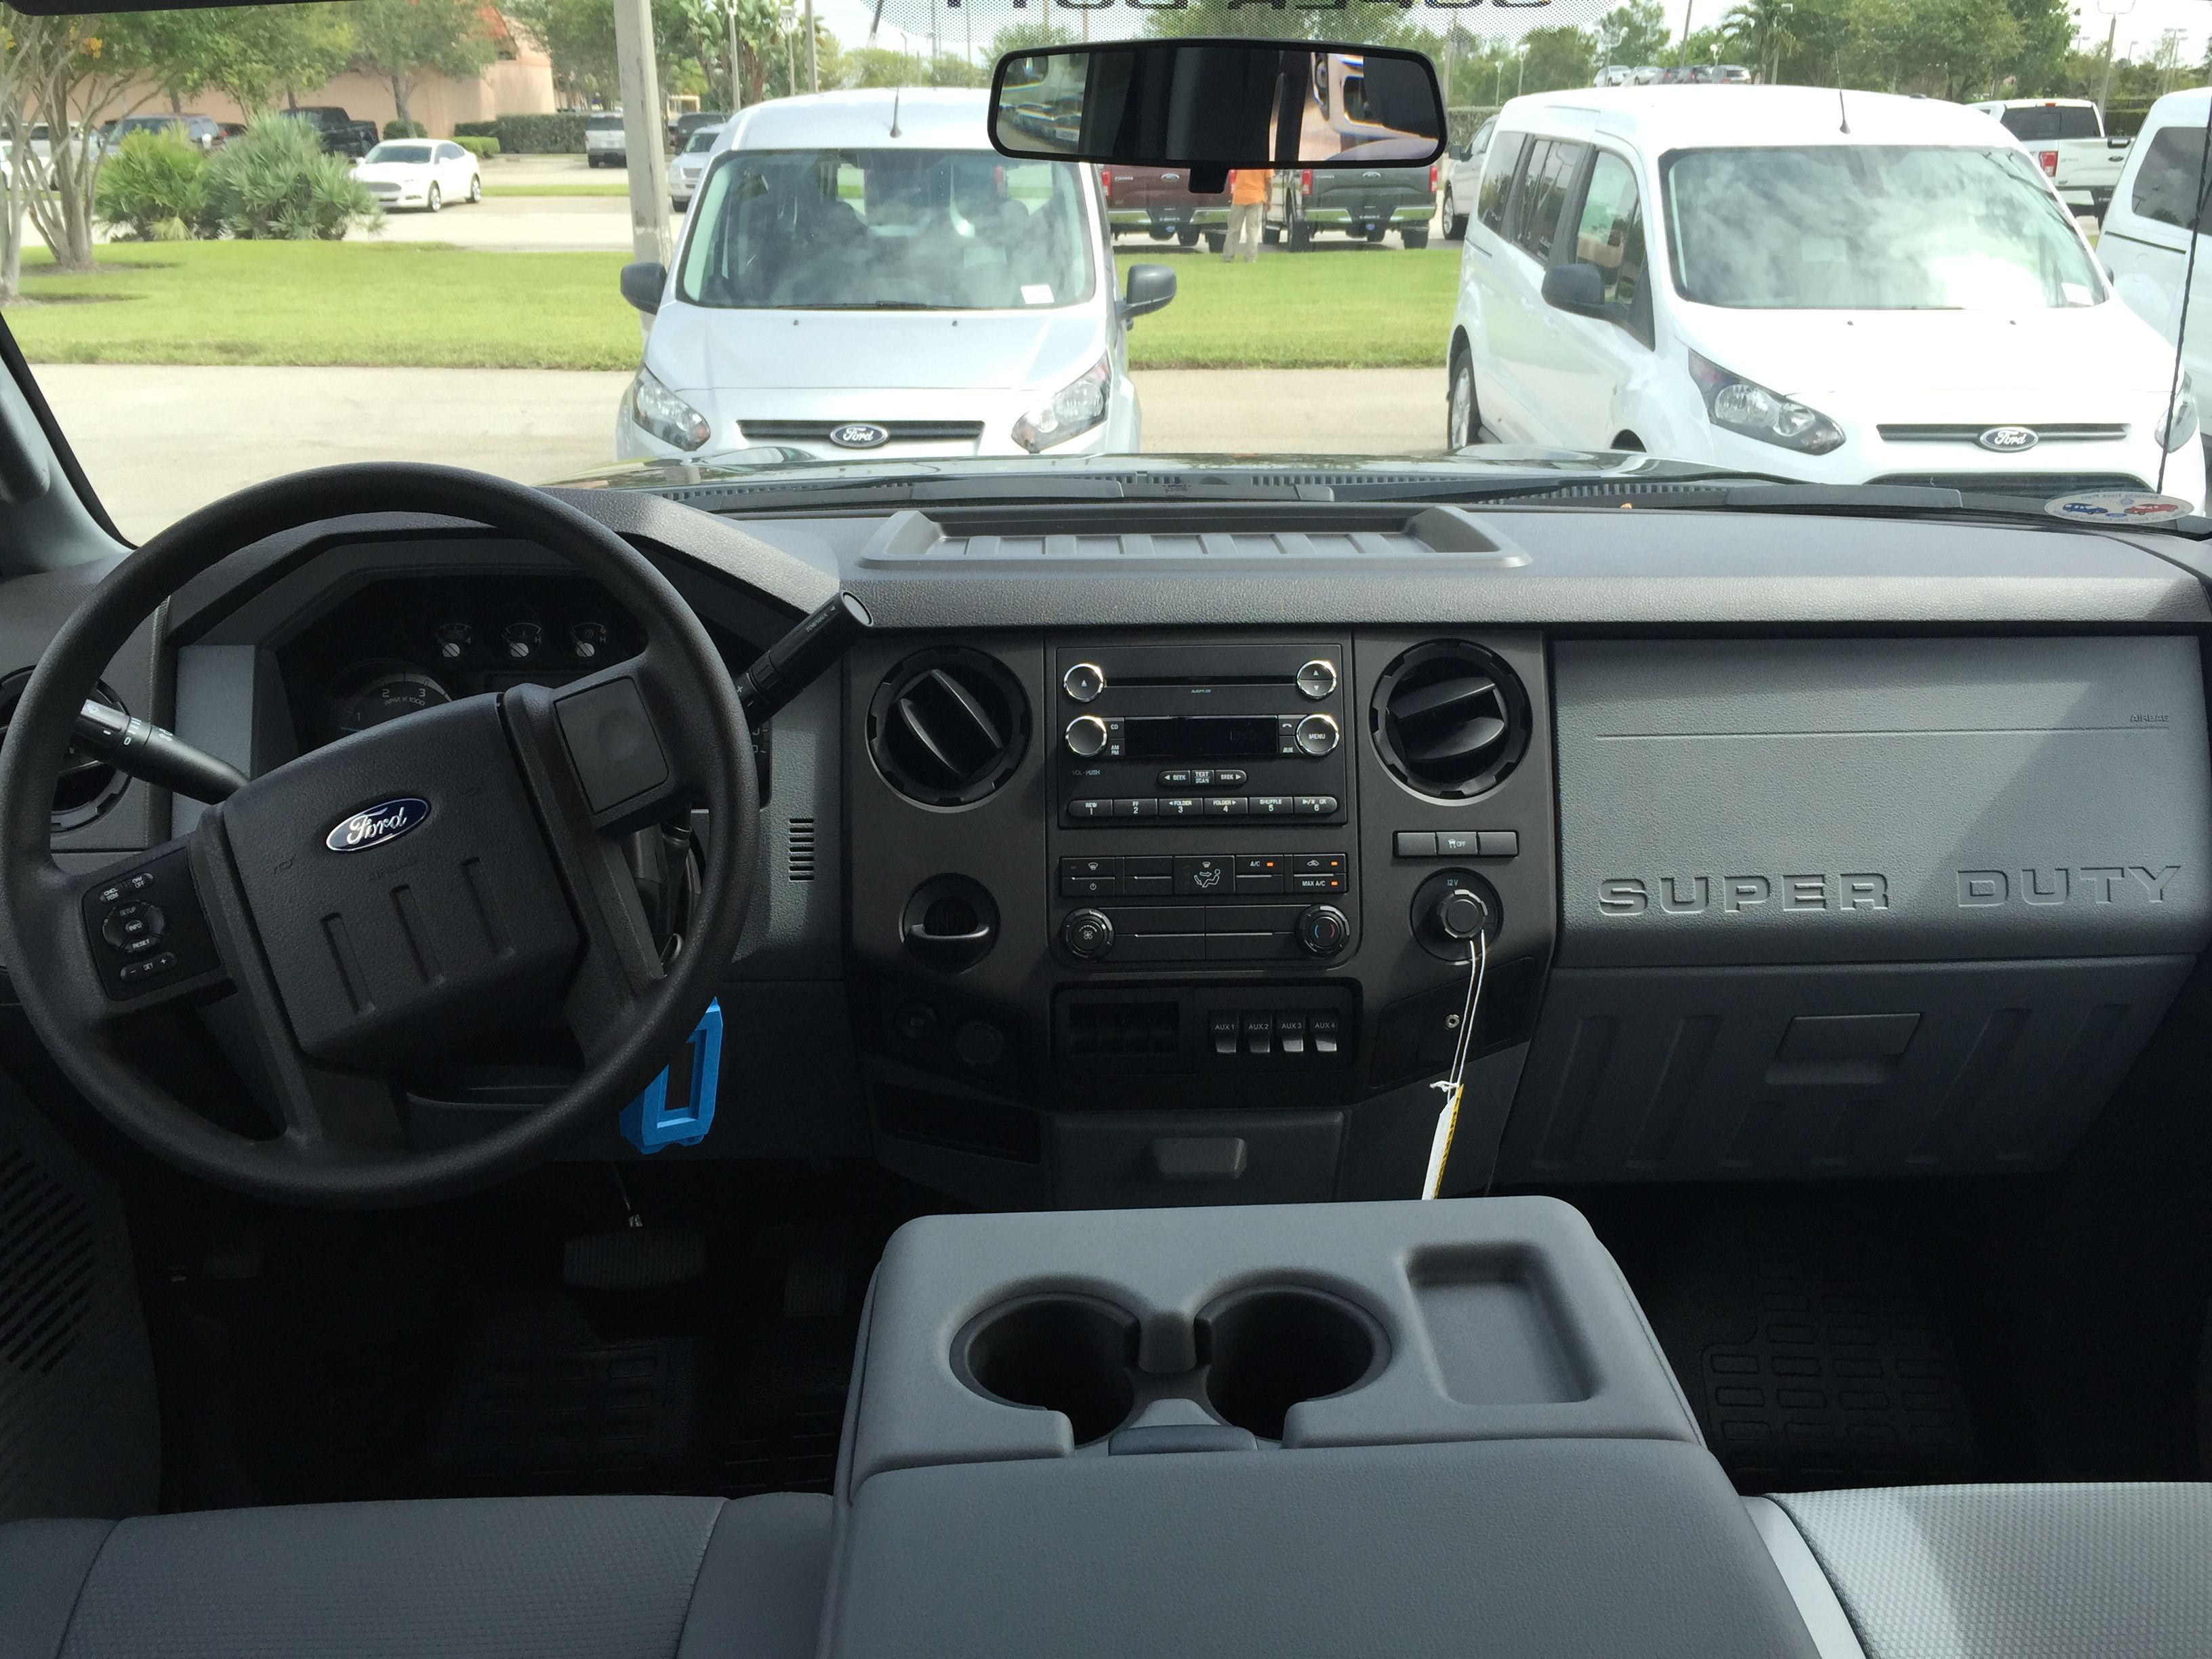 2015 Ford F250 Powerstroke base interior, equipped with 6